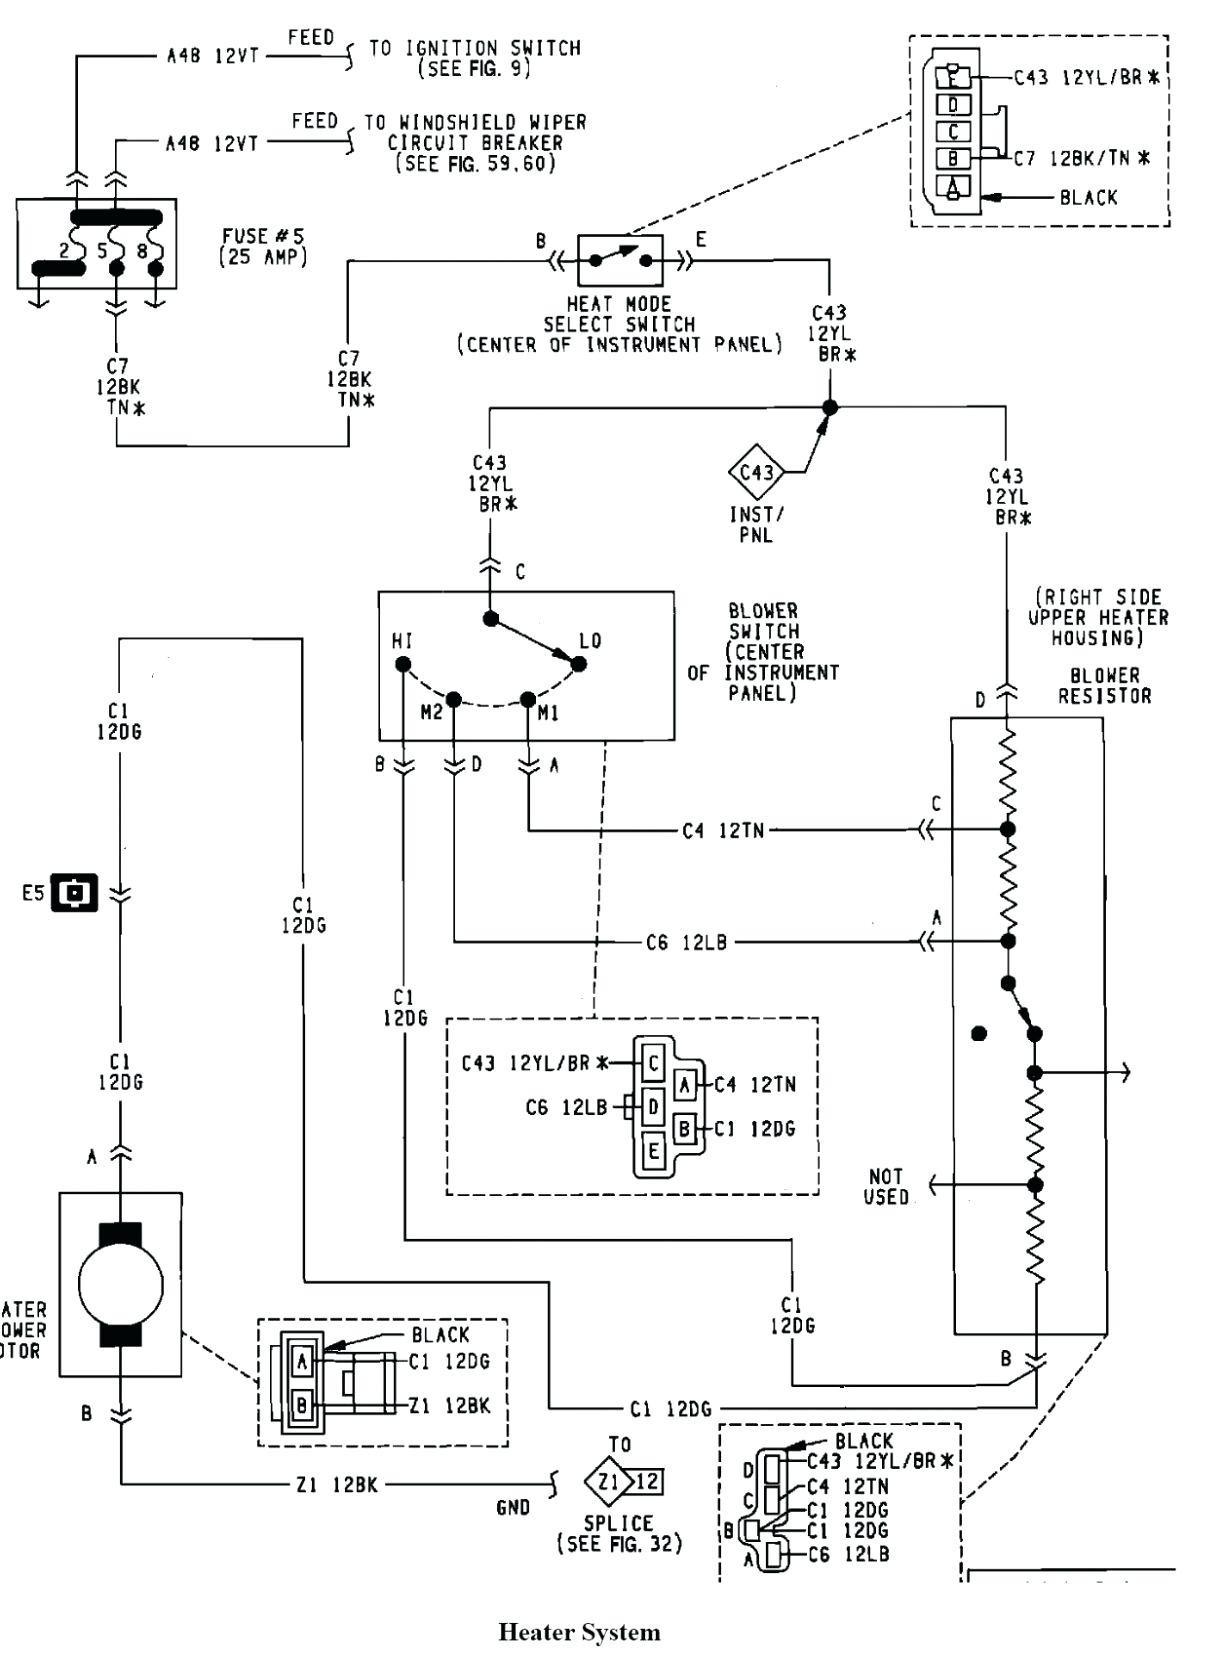 07 Jeep Wrangler Headlight Wiring - Wiring Diagram Direct free-tiger -  free-tiger.siciliabeb.itfree-tiger.siciliabeb.it